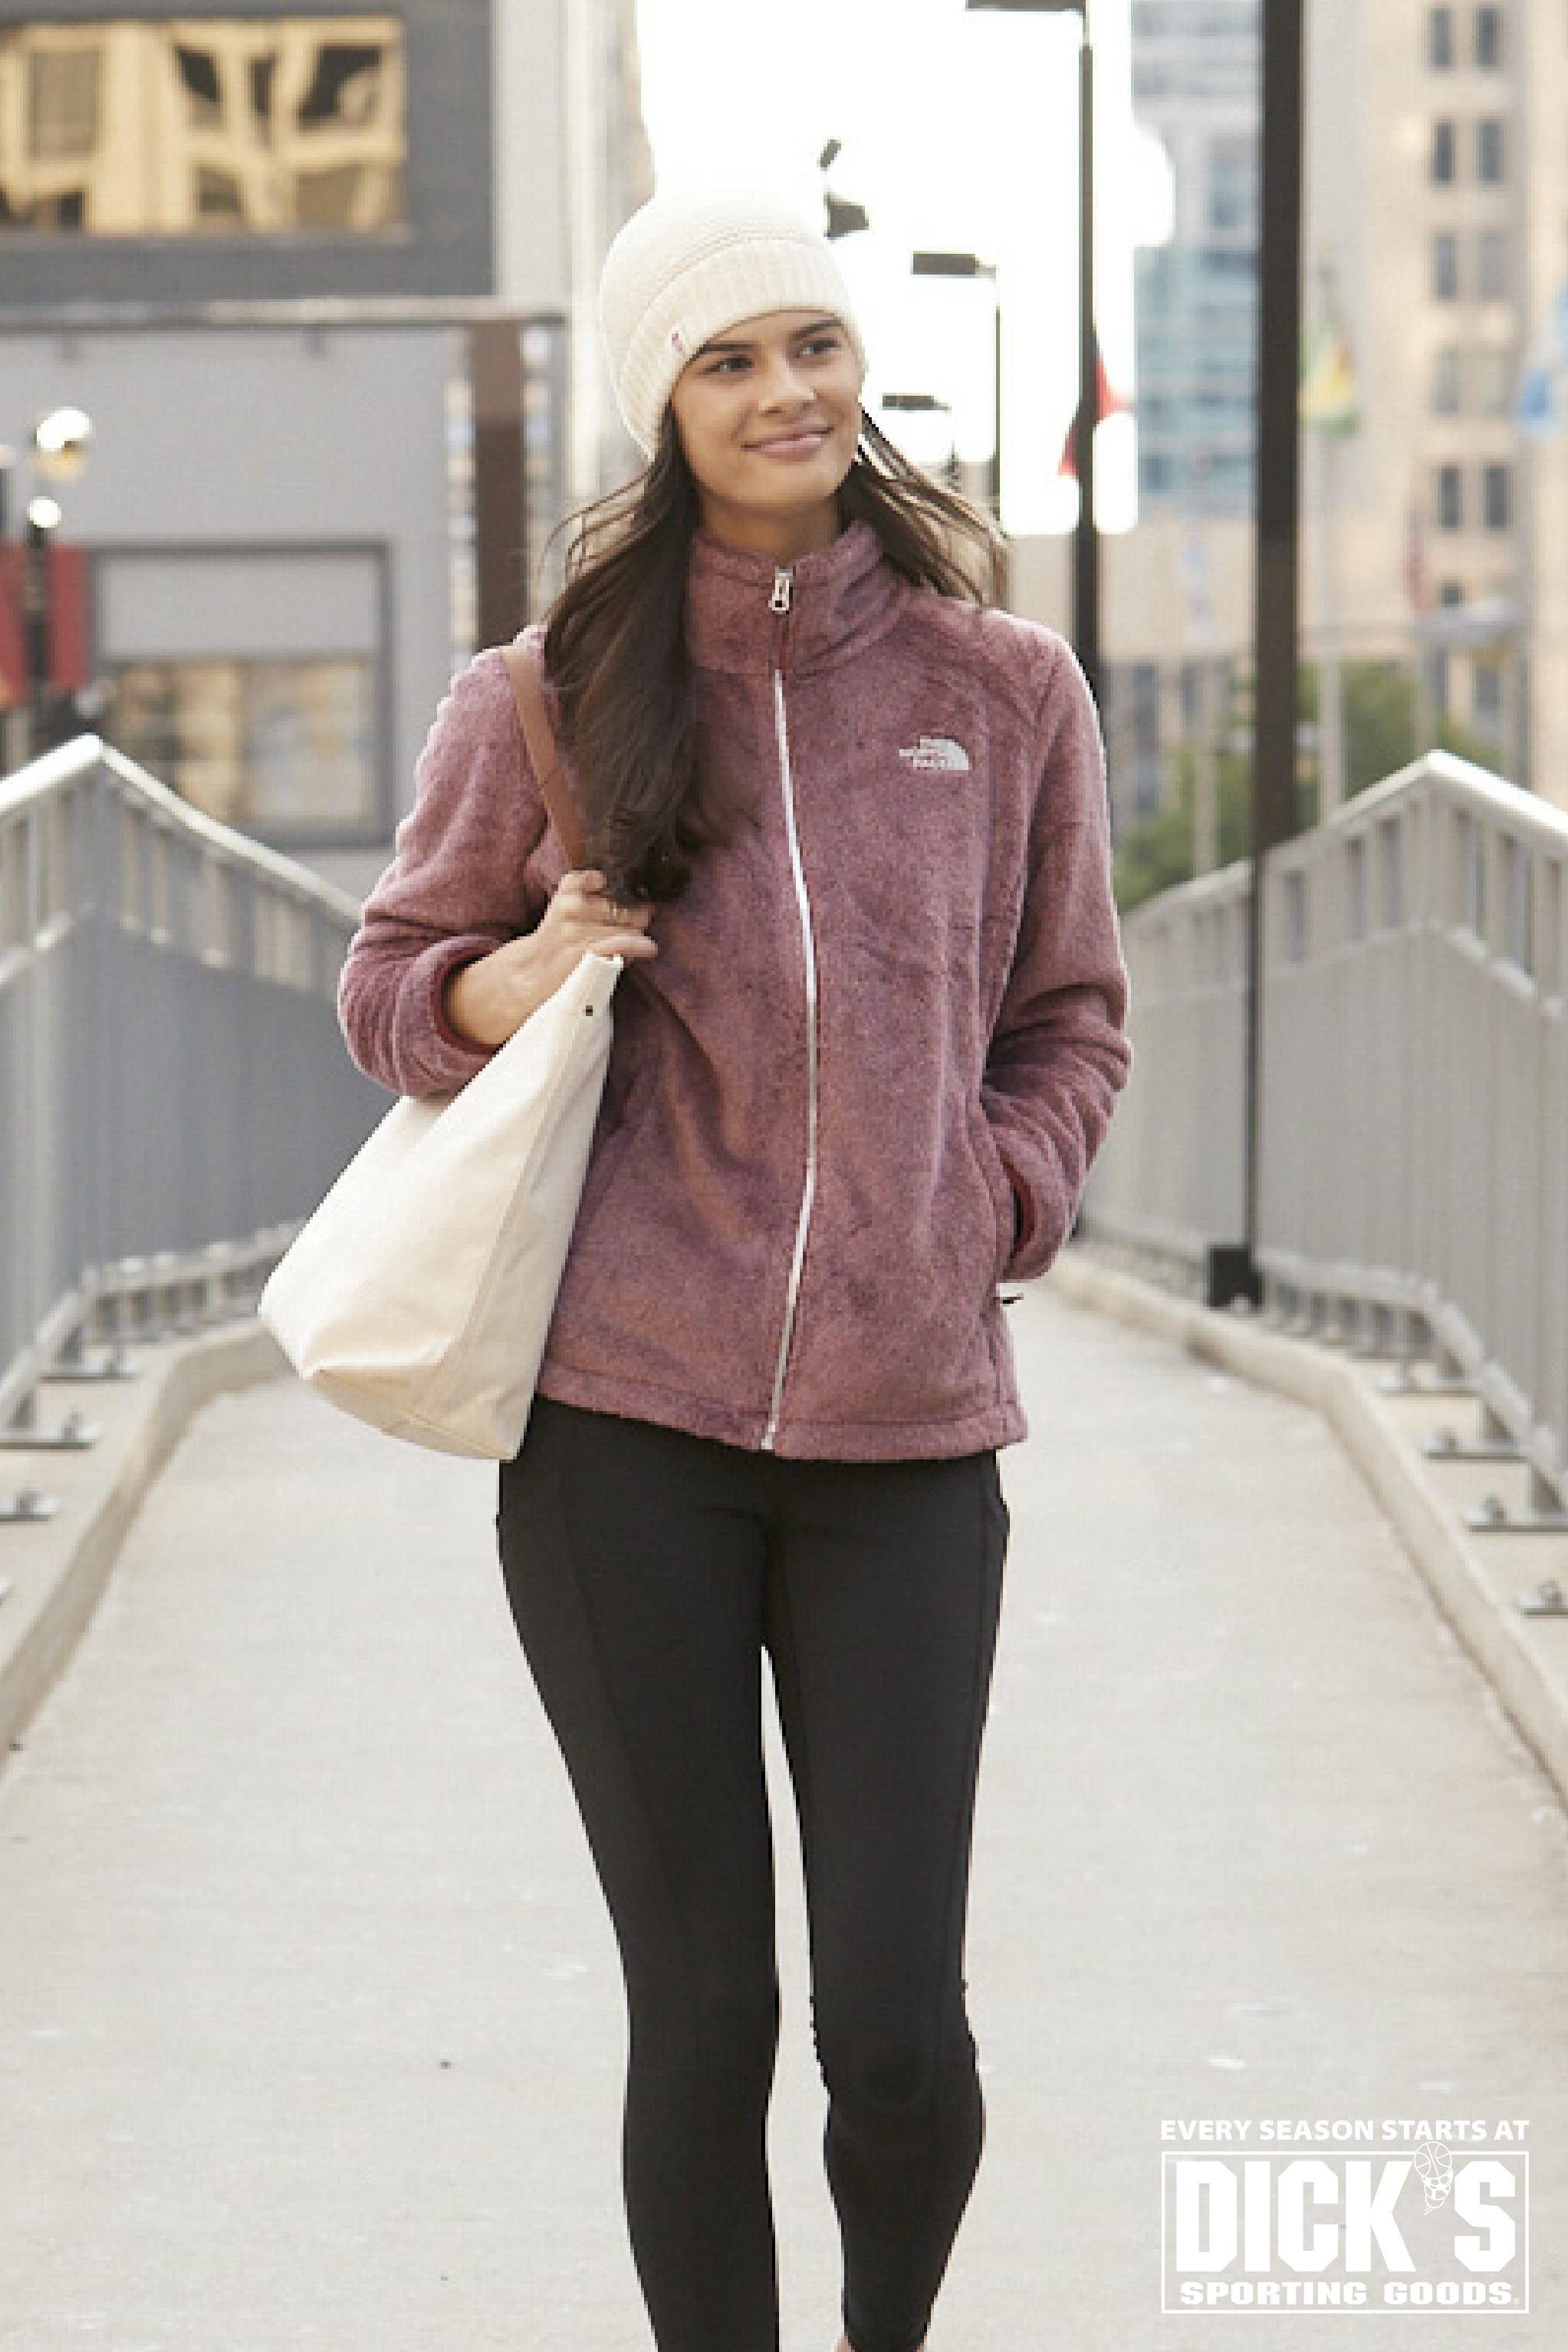 936bf814f4e Gifts for her including The North Face Women s Osito 2 Fleece Jacket at  DICK S Sporting Goods.